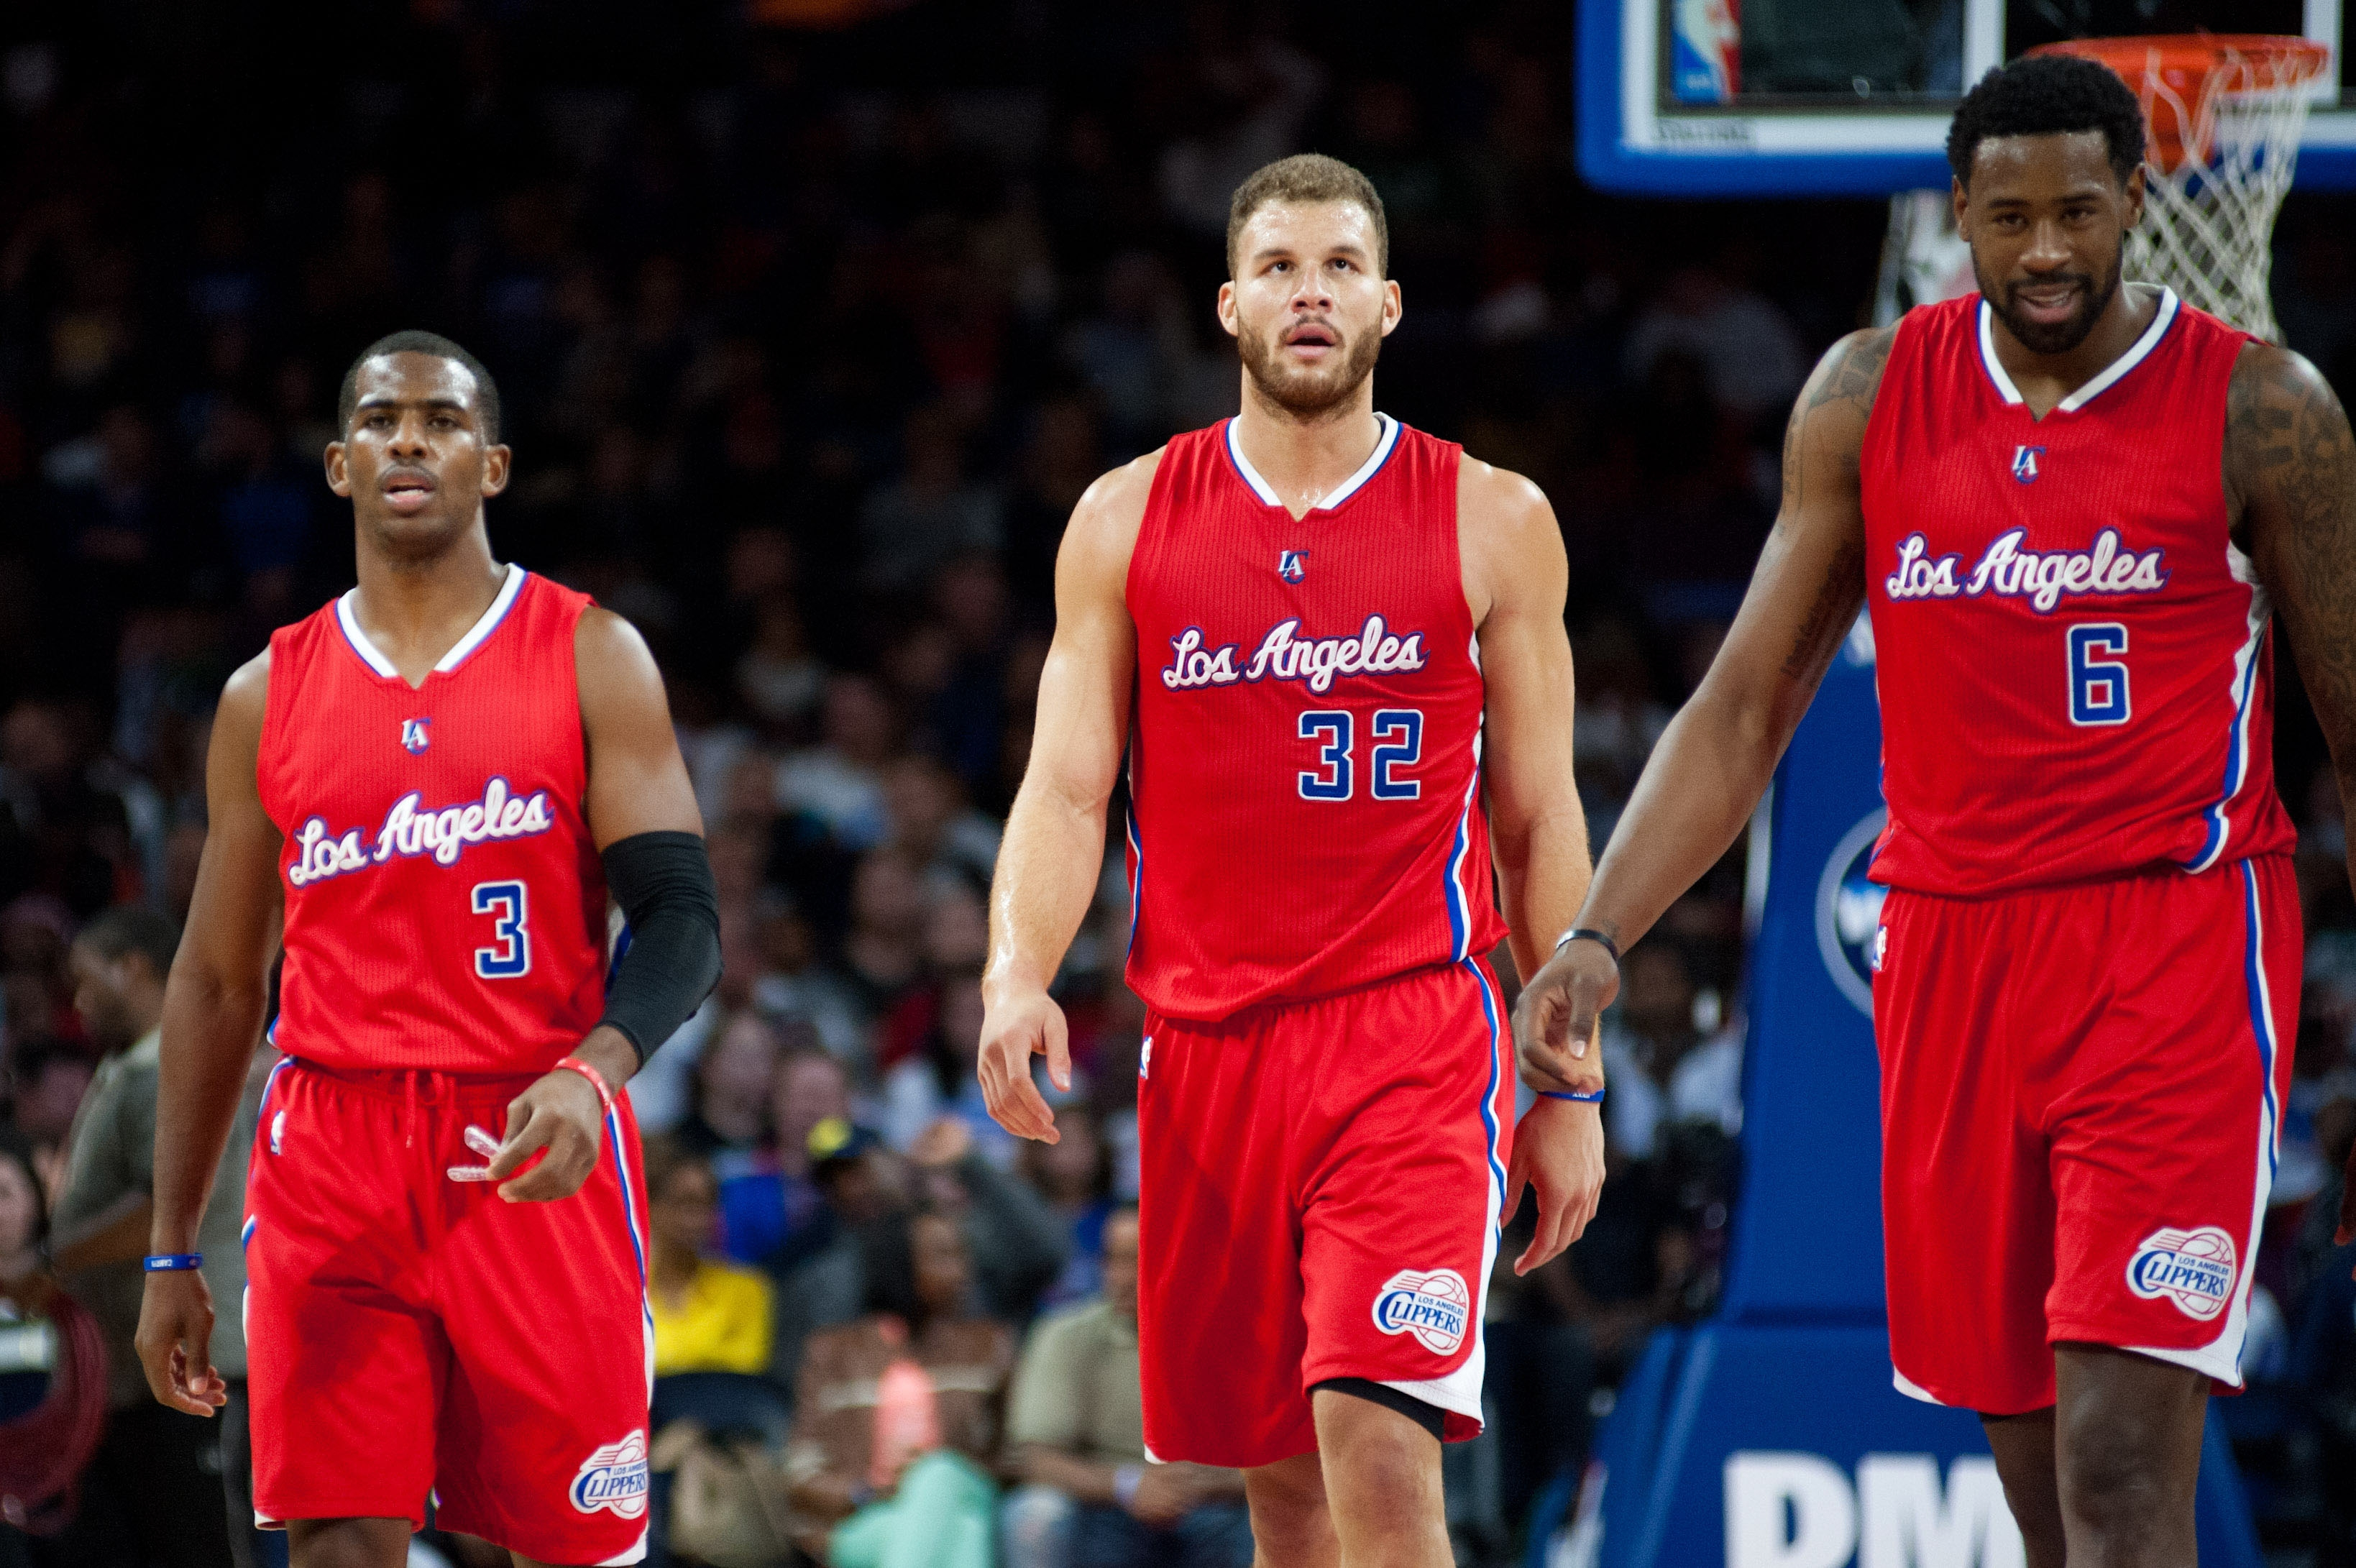 Chris Paul (left), Blake Griffin (middle), and Deandre Jordan (right). / Photo Courtesy USA TODAY Sports